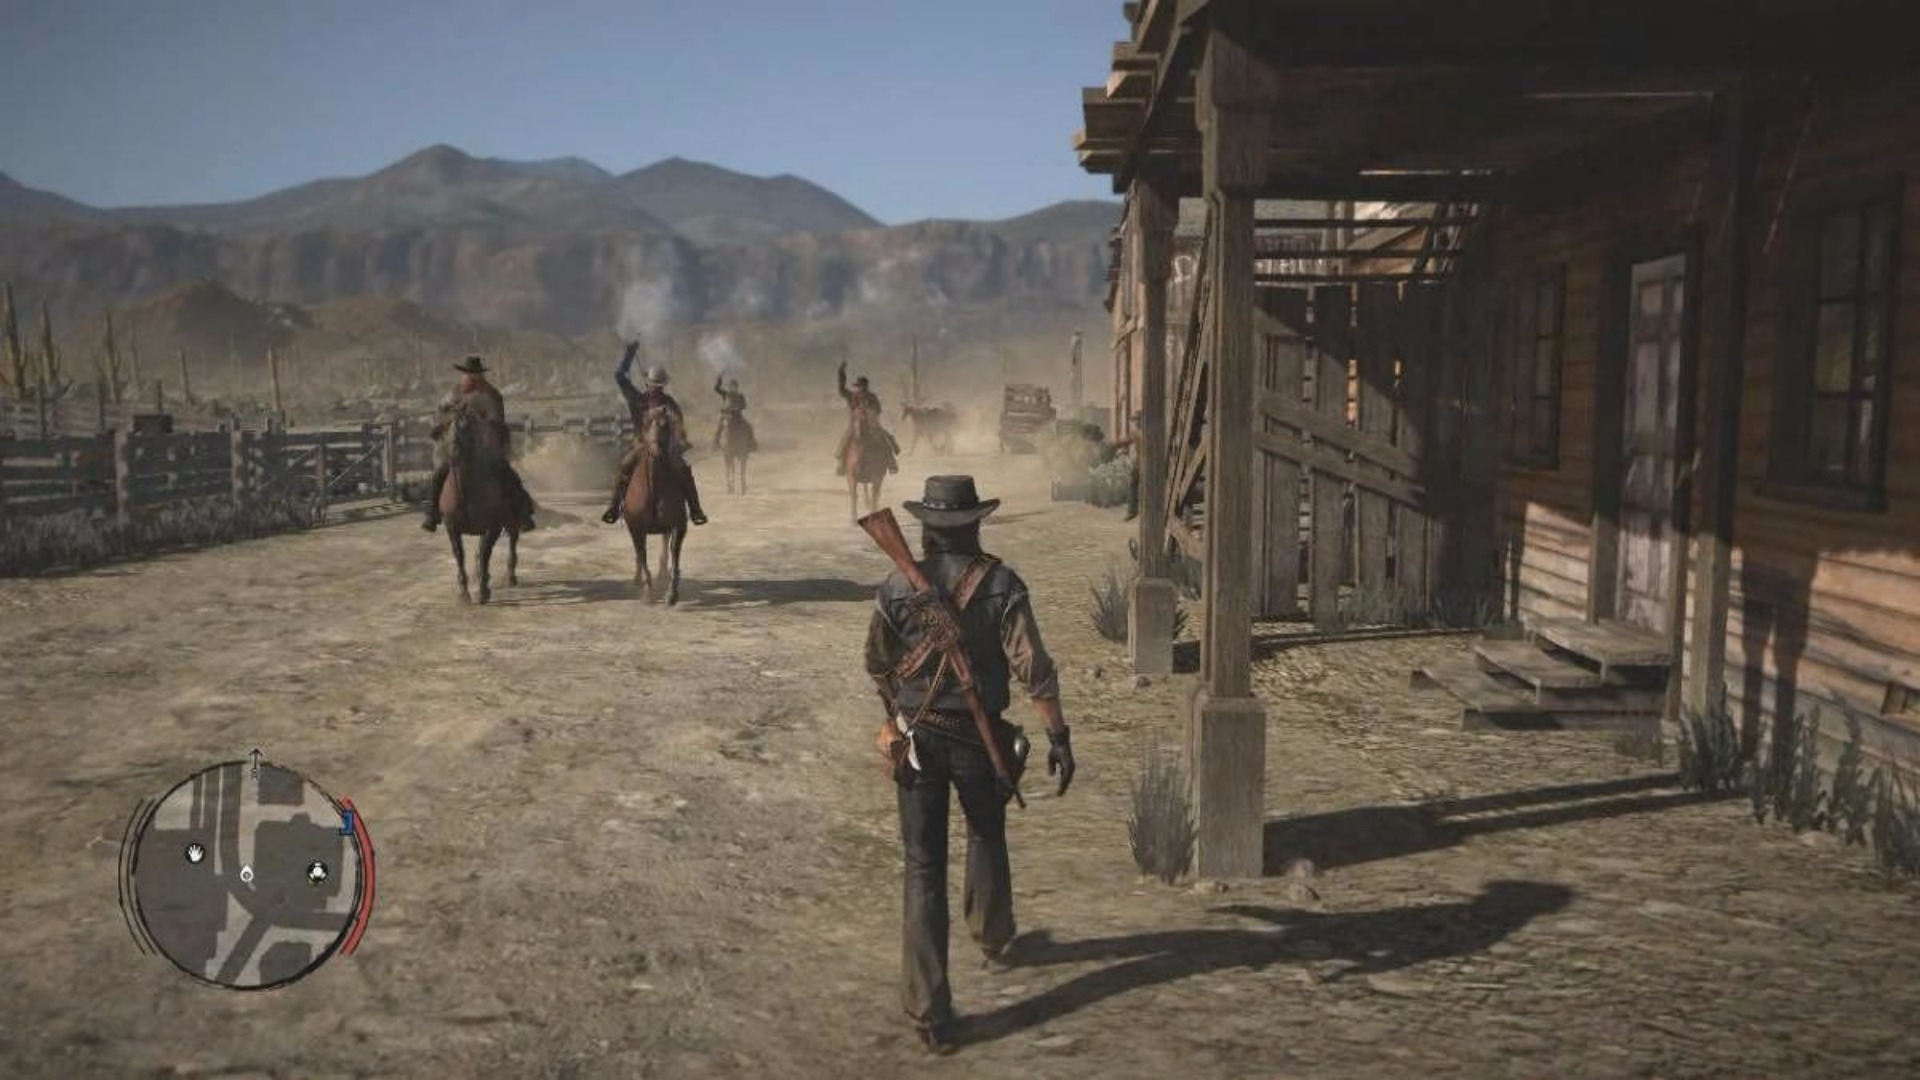 Red Dead Redemption 2 will be available worldwide for PlayStation 4 and Xbox One systems on October 26 2018 Developed by the creators of Grand Theft Auto V and Red